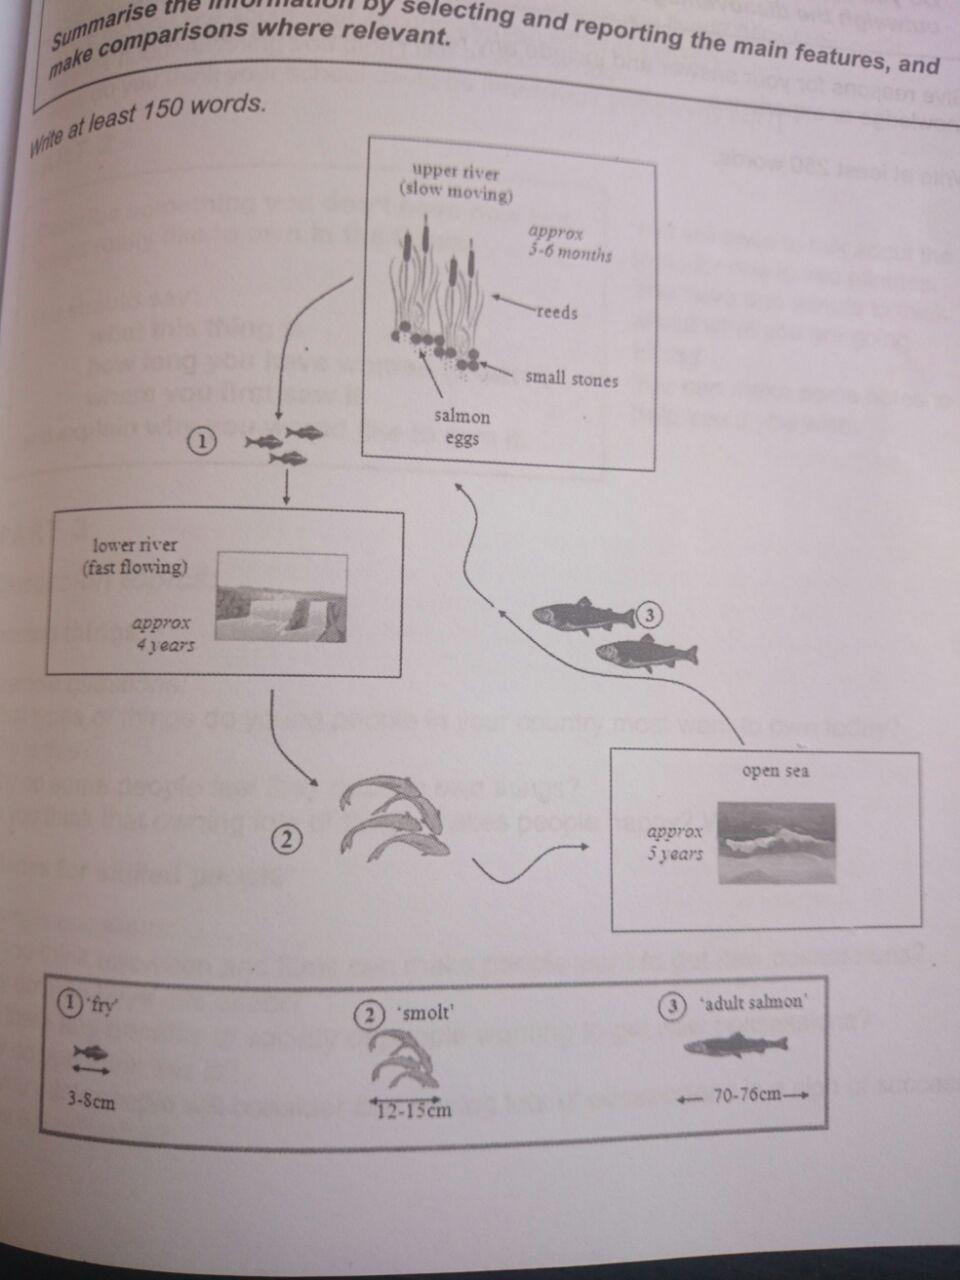 The Diagrams Below Show The Life Cycle Of A Species Of